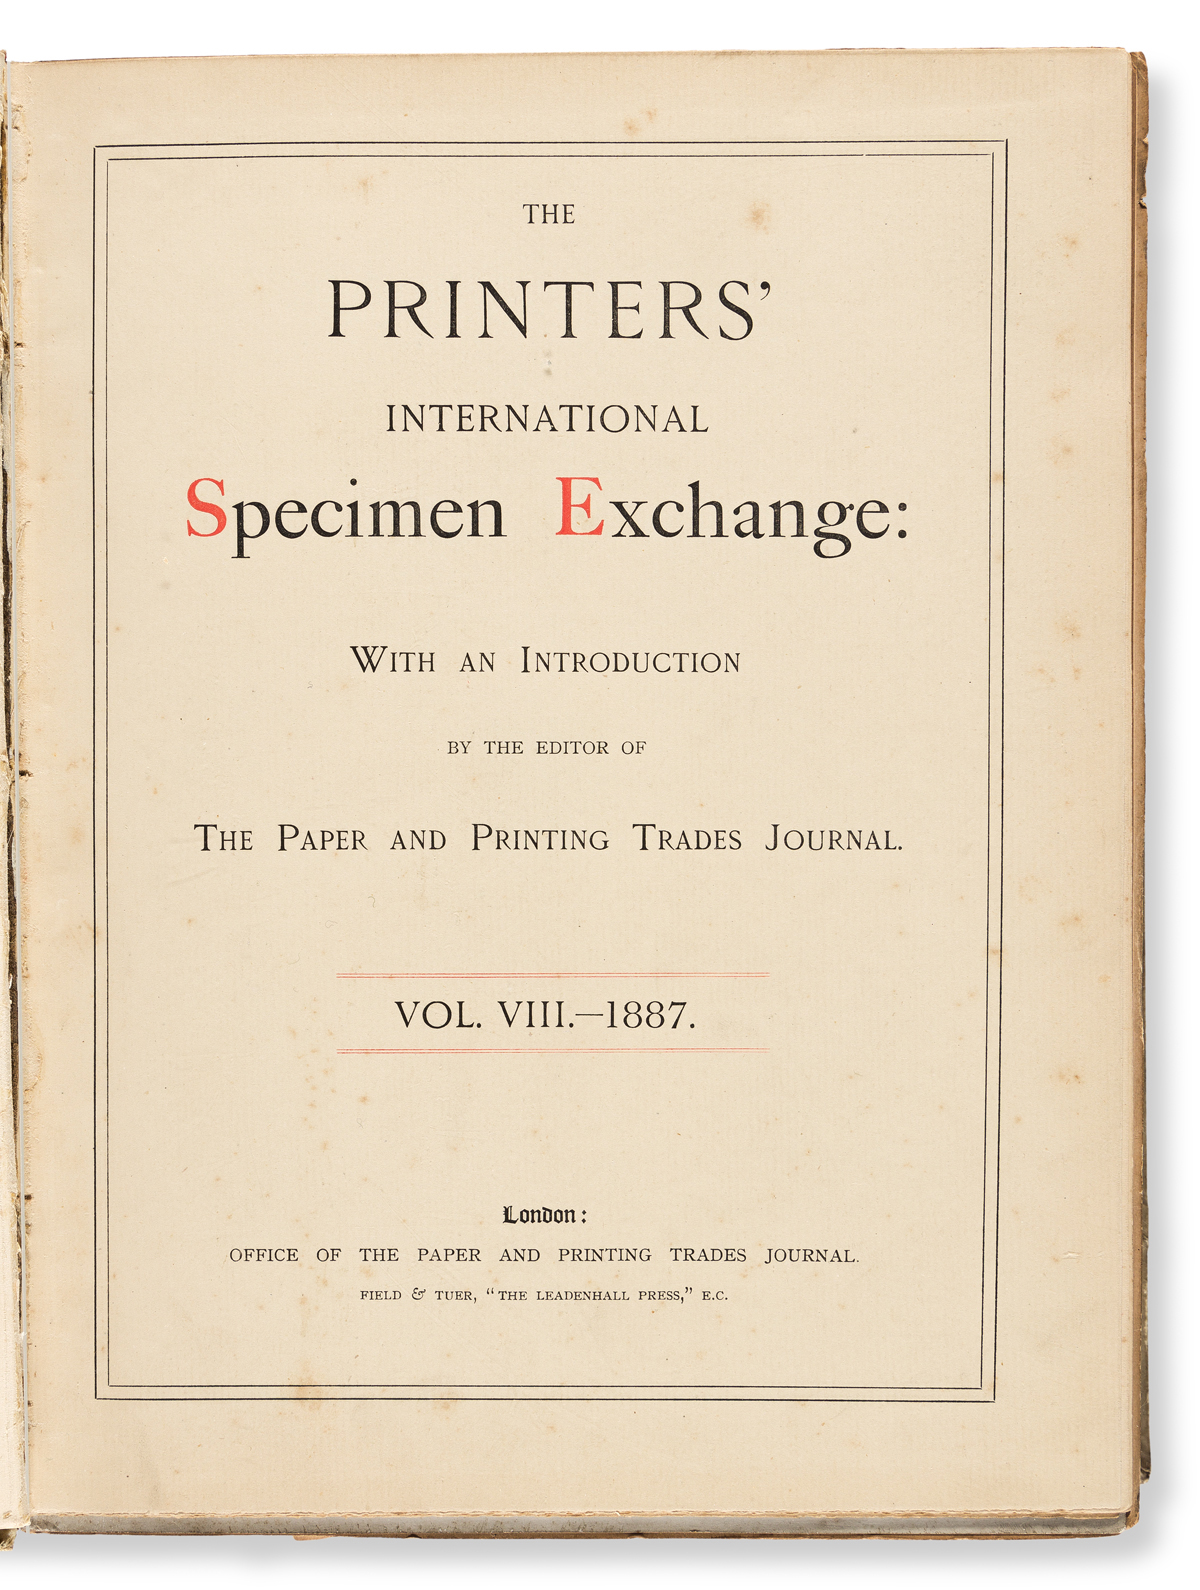 [SPECIMEN BOOK — INTERNATIONAL SPECIMEN EXCHANGE]. The Printers' International Specimen Exchange: With an Introduction by the Editor of